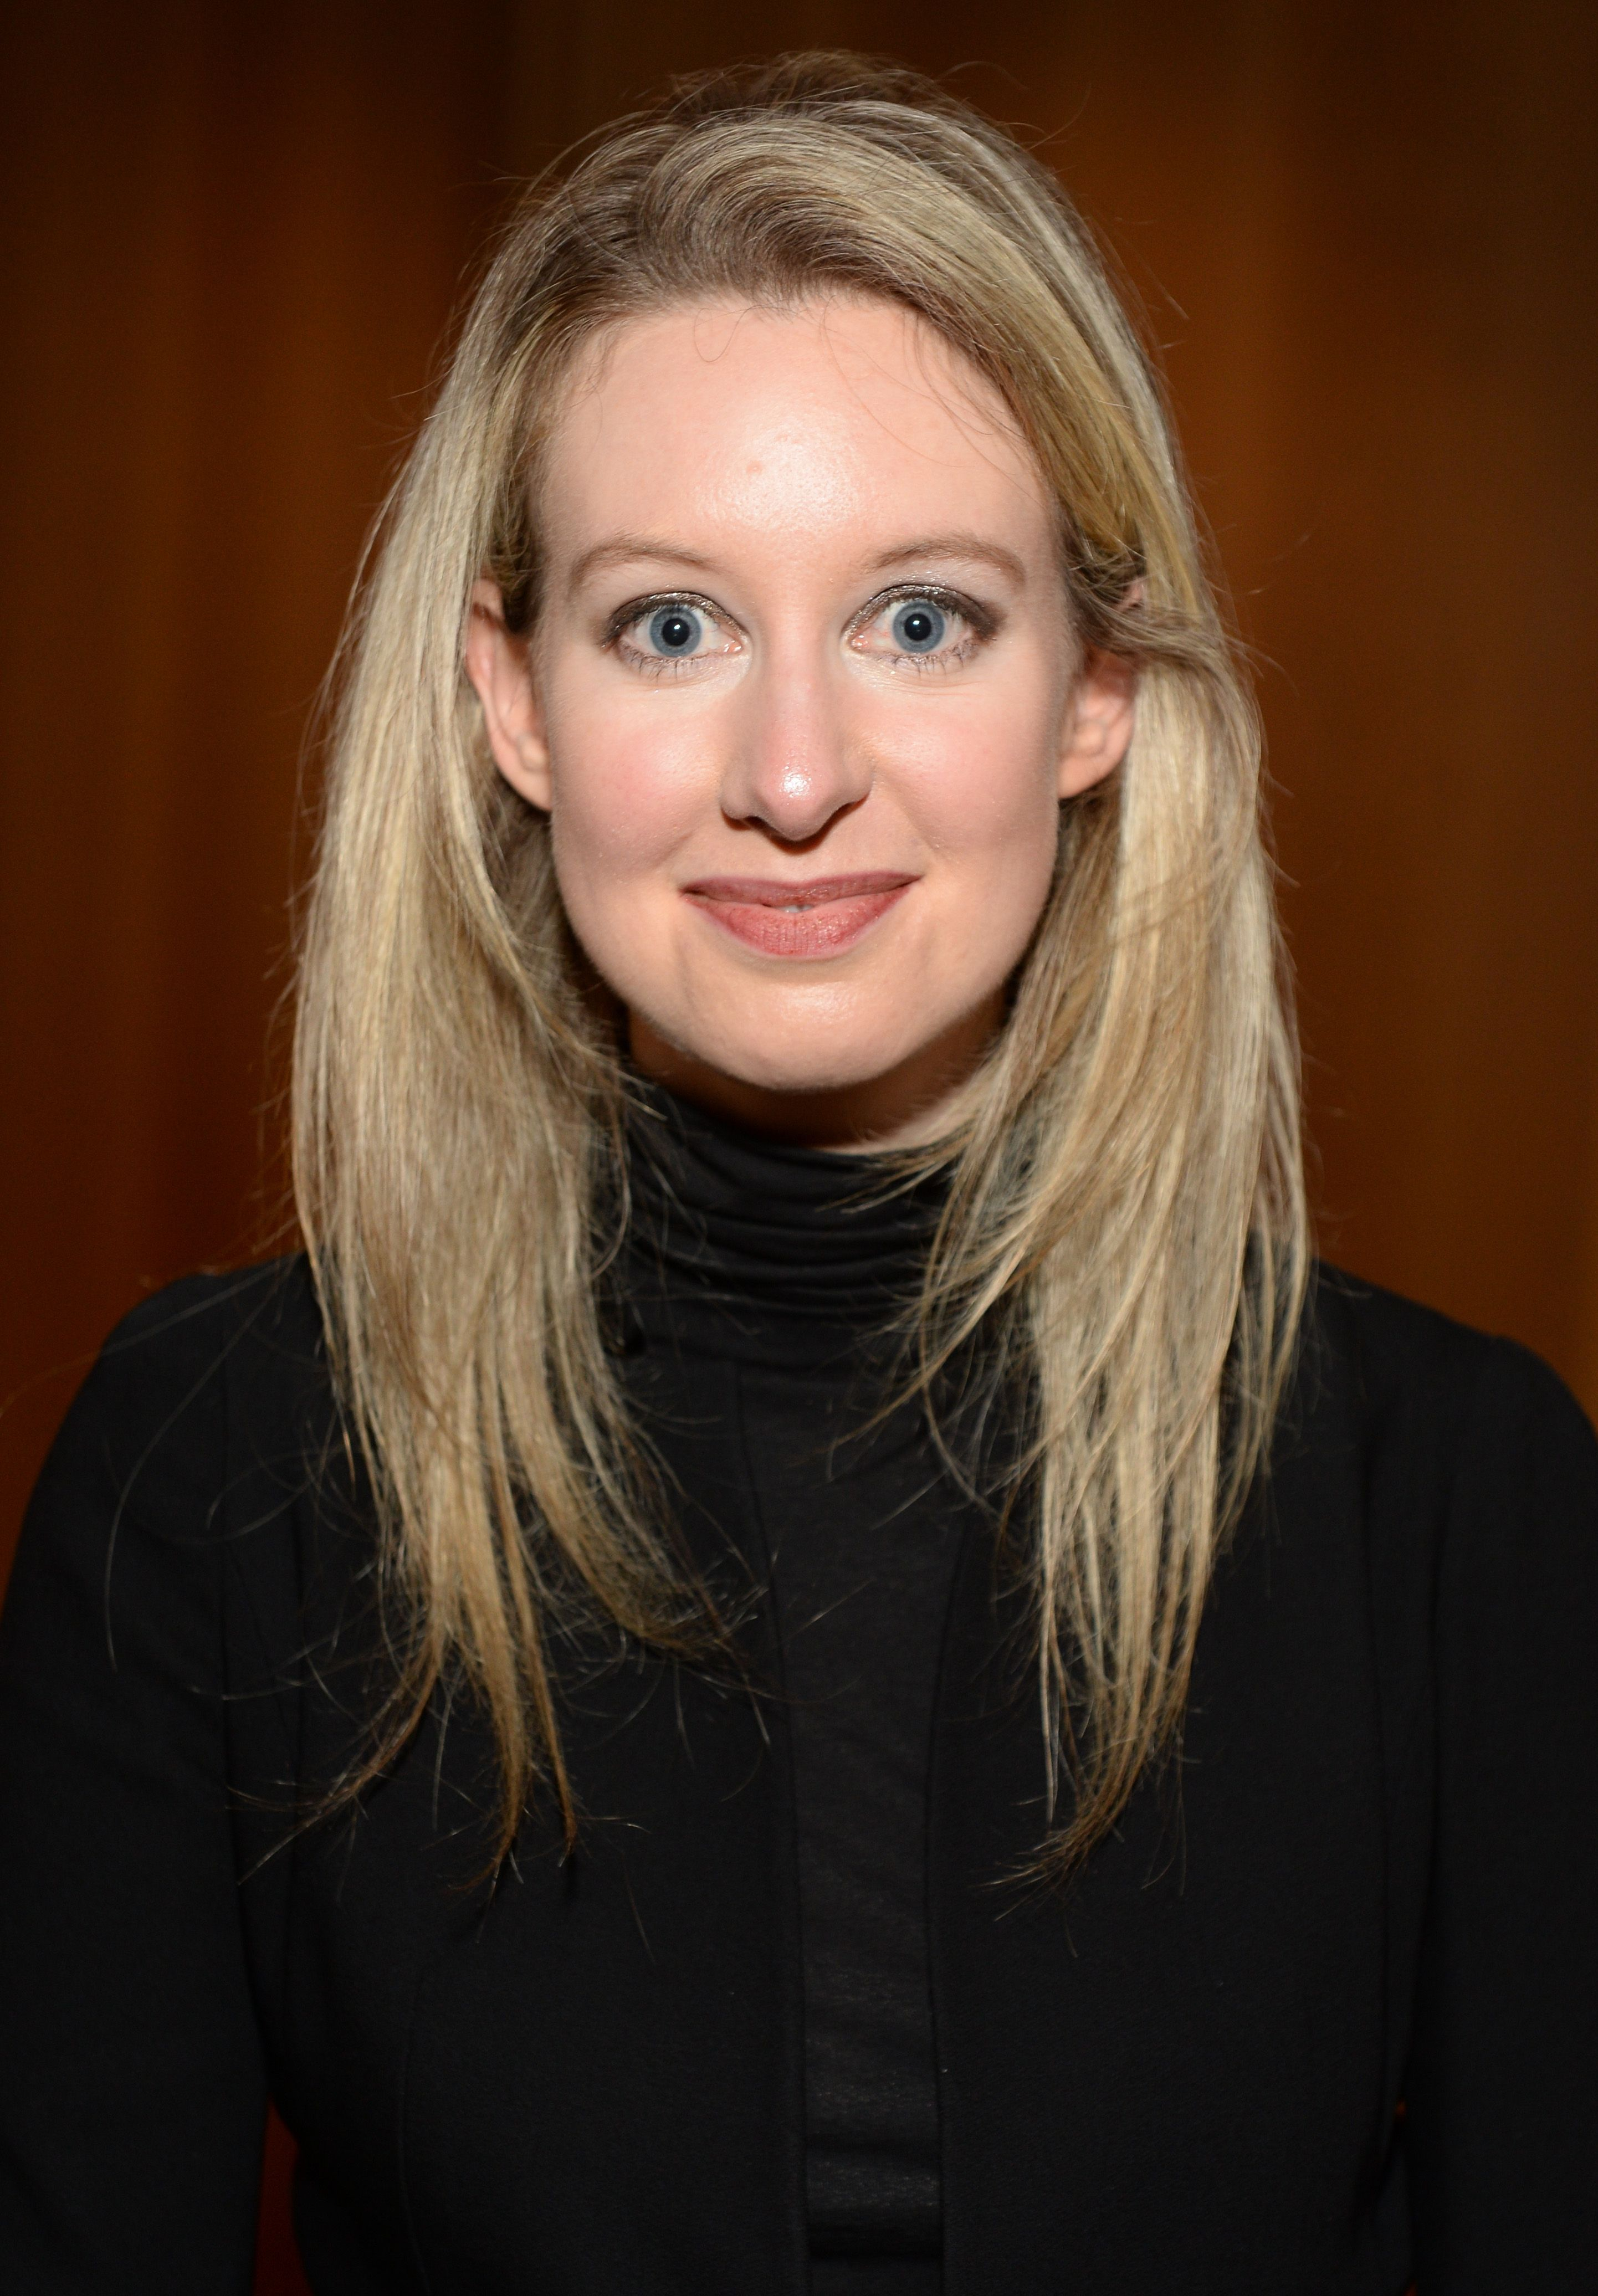 Elizabeth Holmes Reportedly Got Married In Secret. Here's Everything We Know So Far.